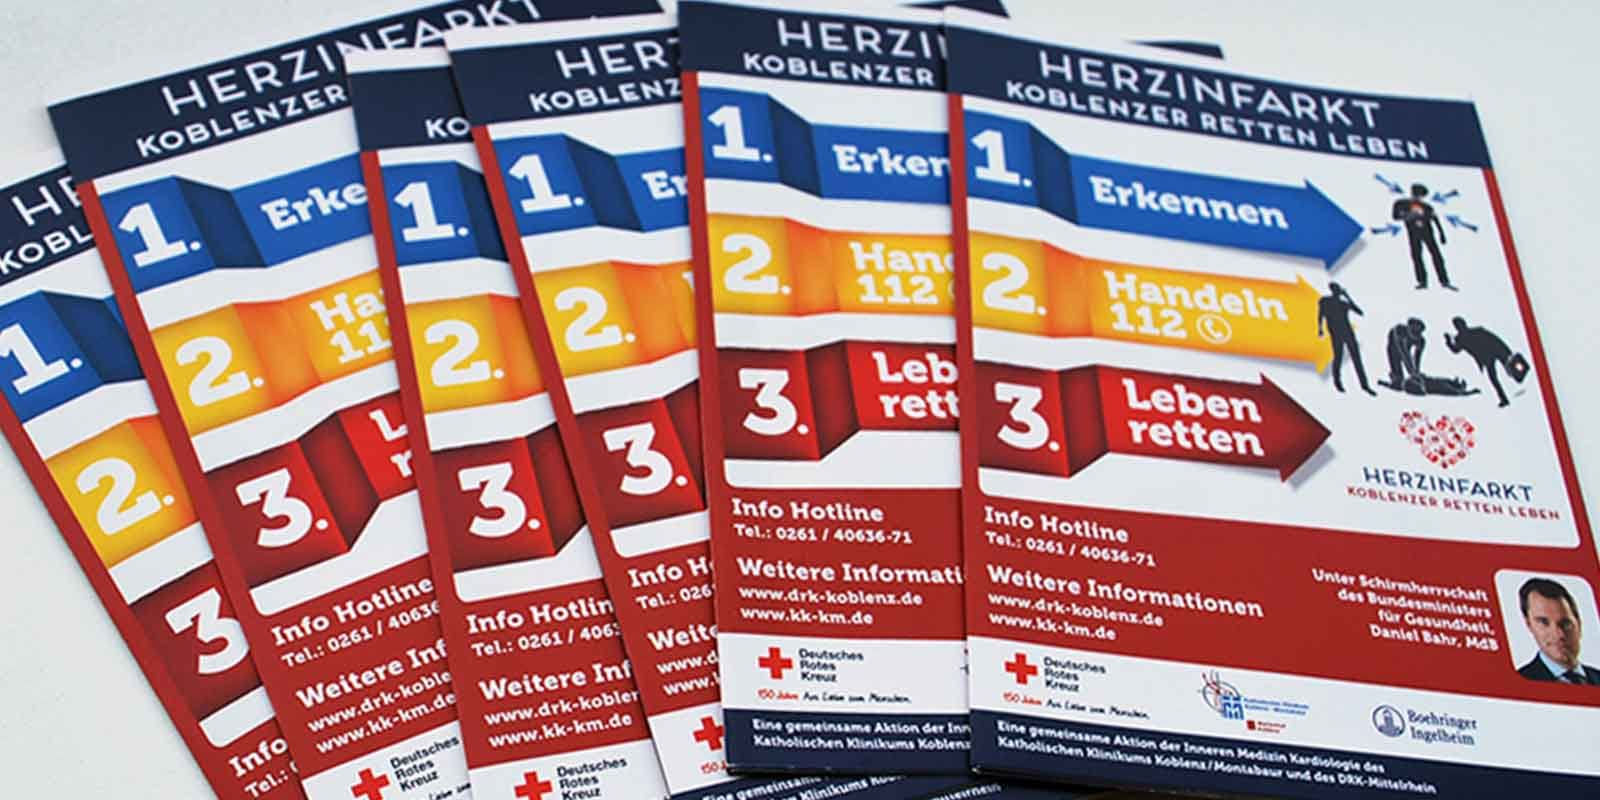 Stack of Brochures showing Creative Direction, Custom Design and Wordpress Development, Marketing for DRK German Red Cross